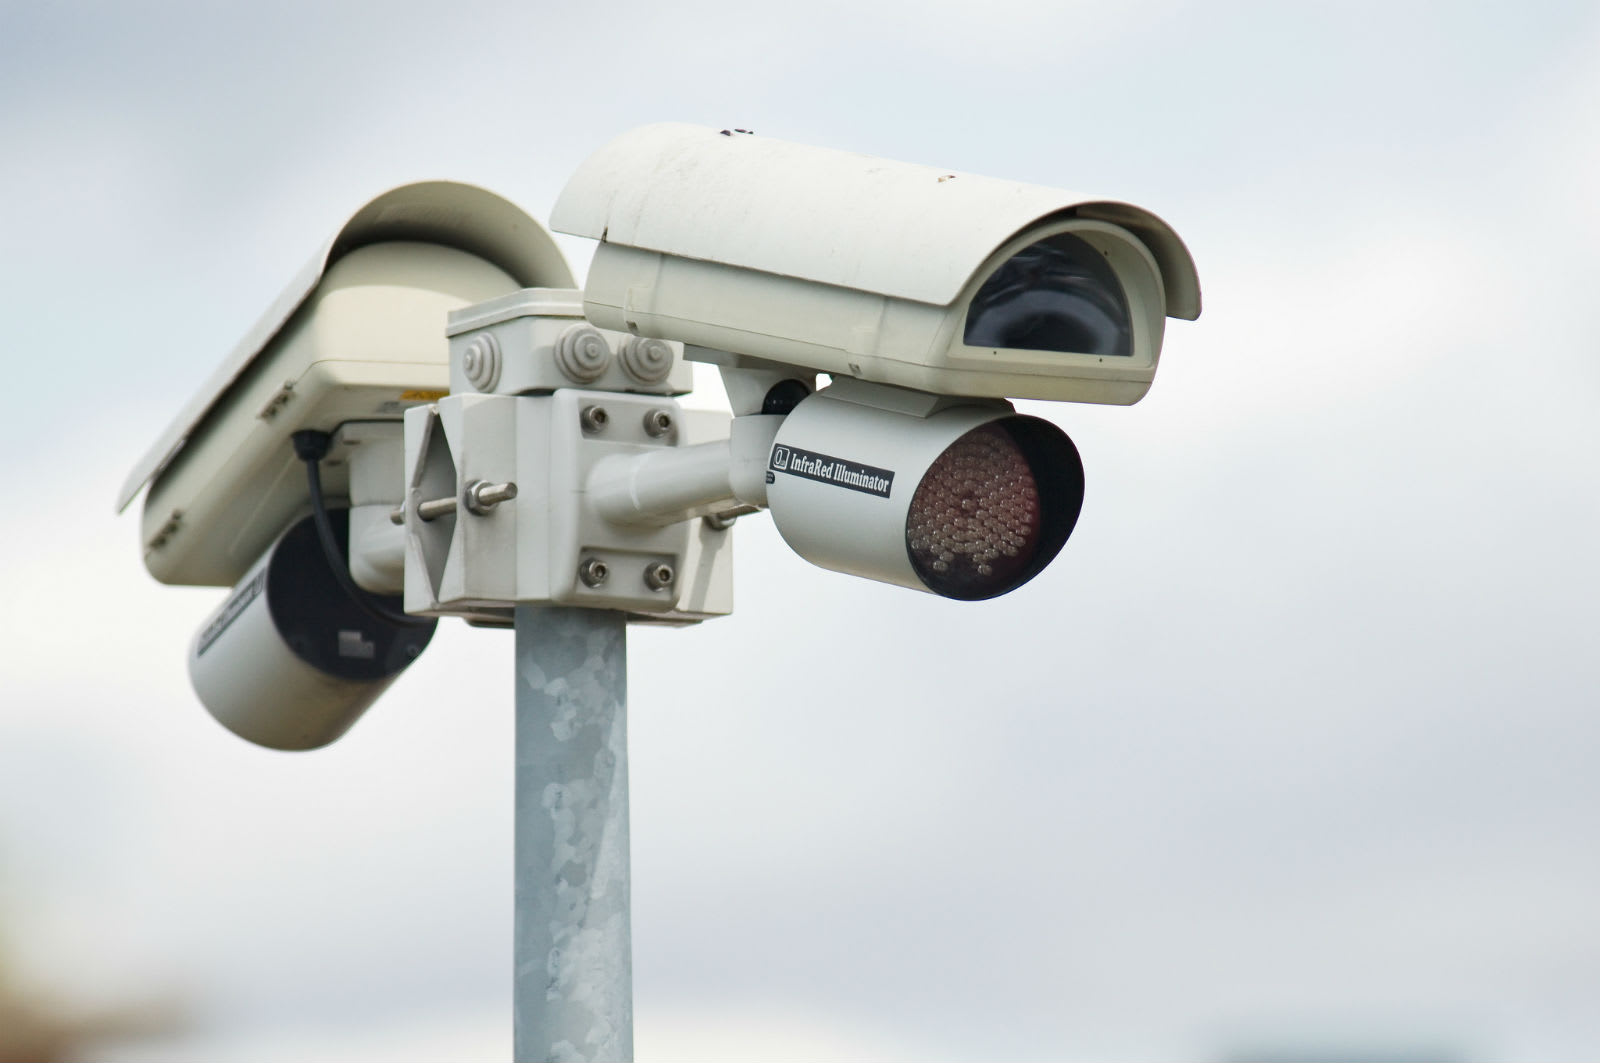 China uses facial recognition to monitor ethnic minorities